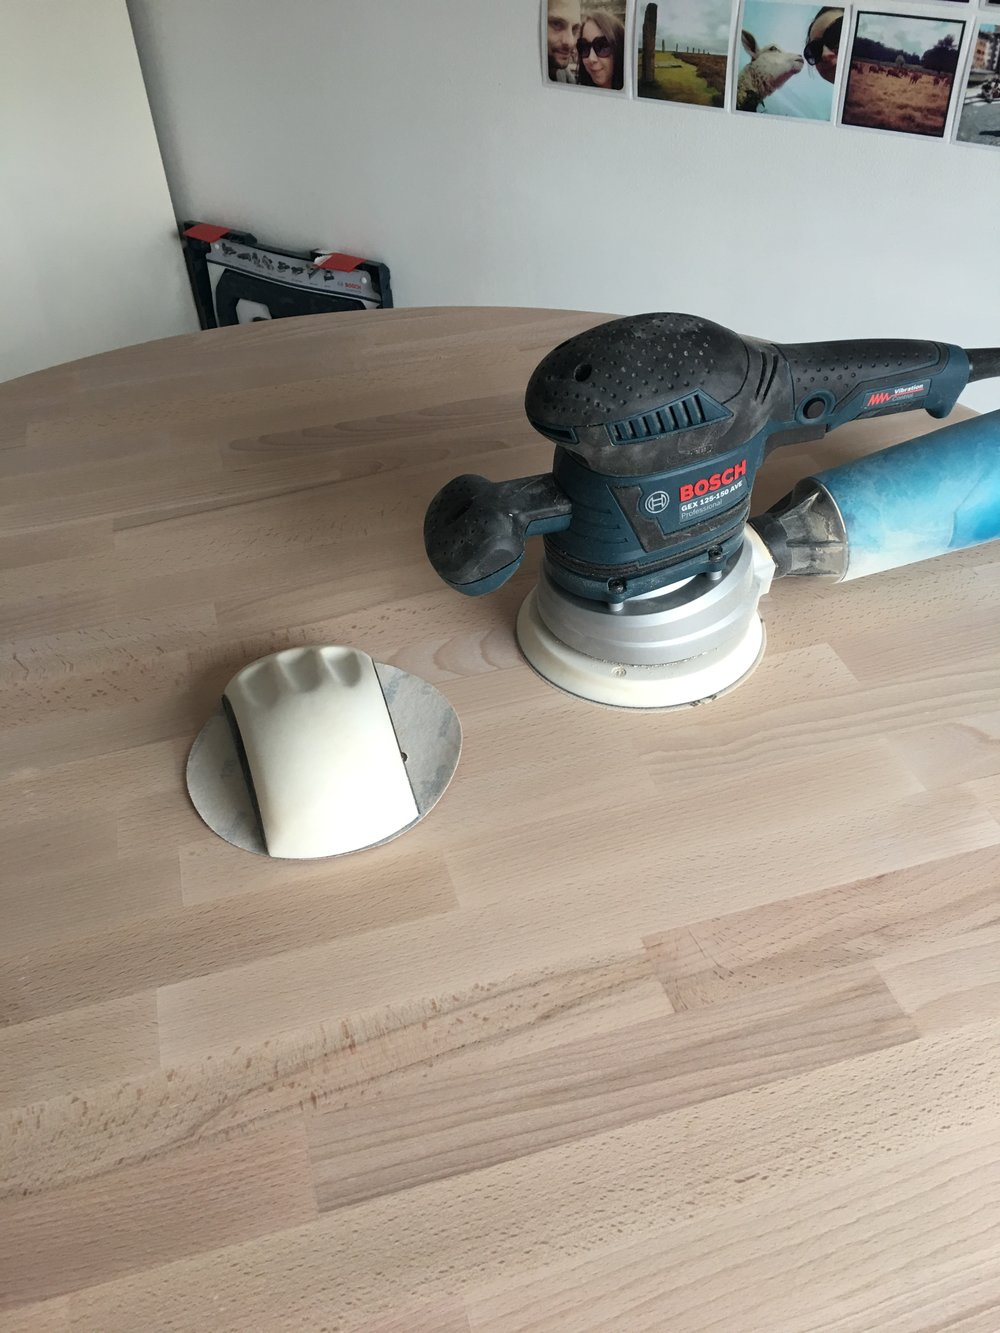 The new sander.  Bosch GEX 125-150 AVE